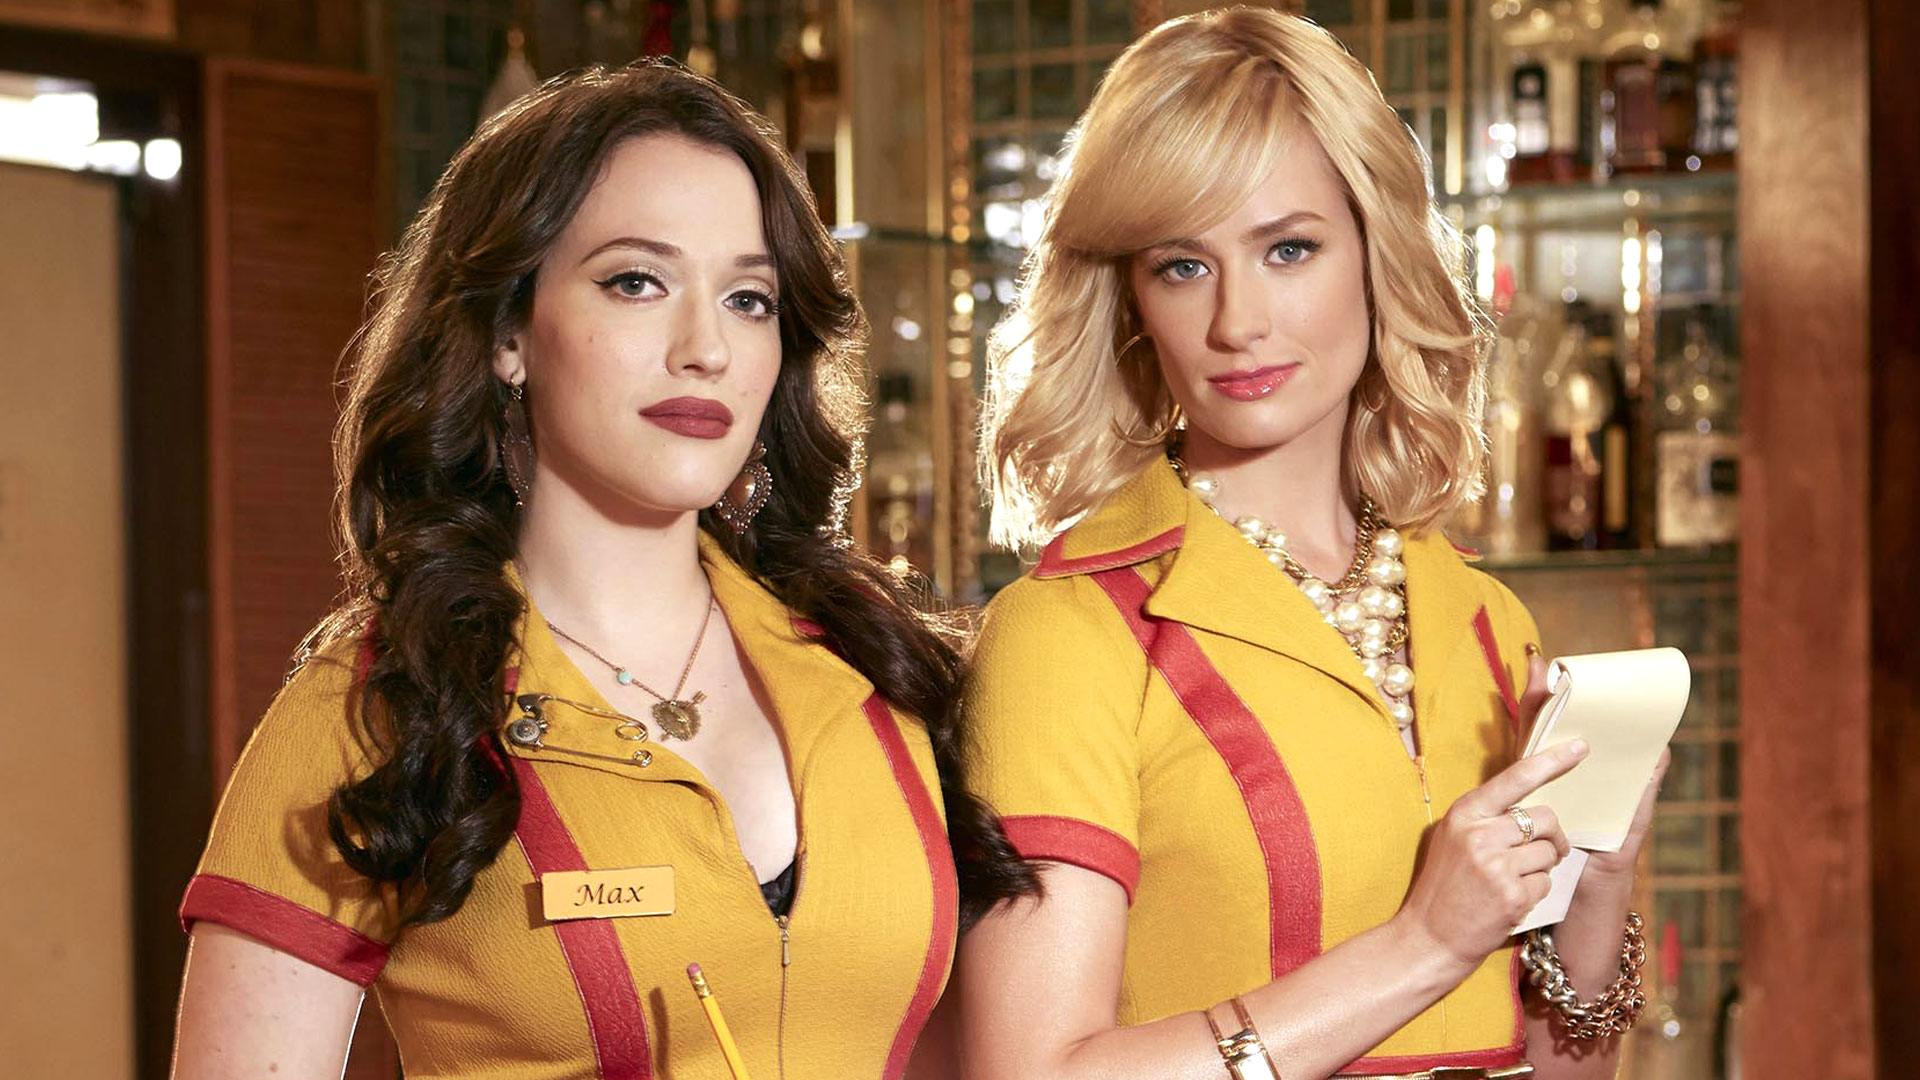 Kat Dennings and Beth Behrs wear waitress uniforms in 2 Broke Girls